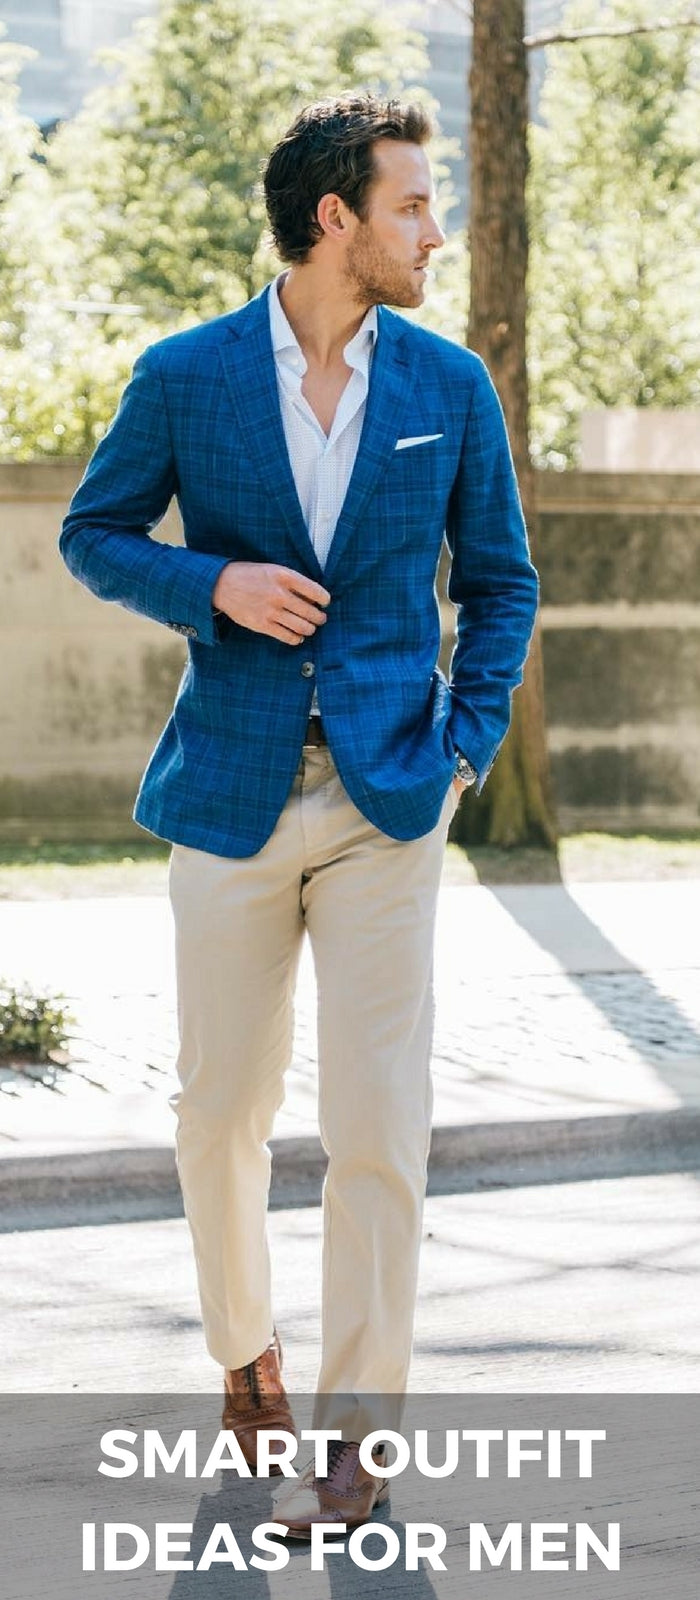 Smart outfit ideas for men #mensfashion